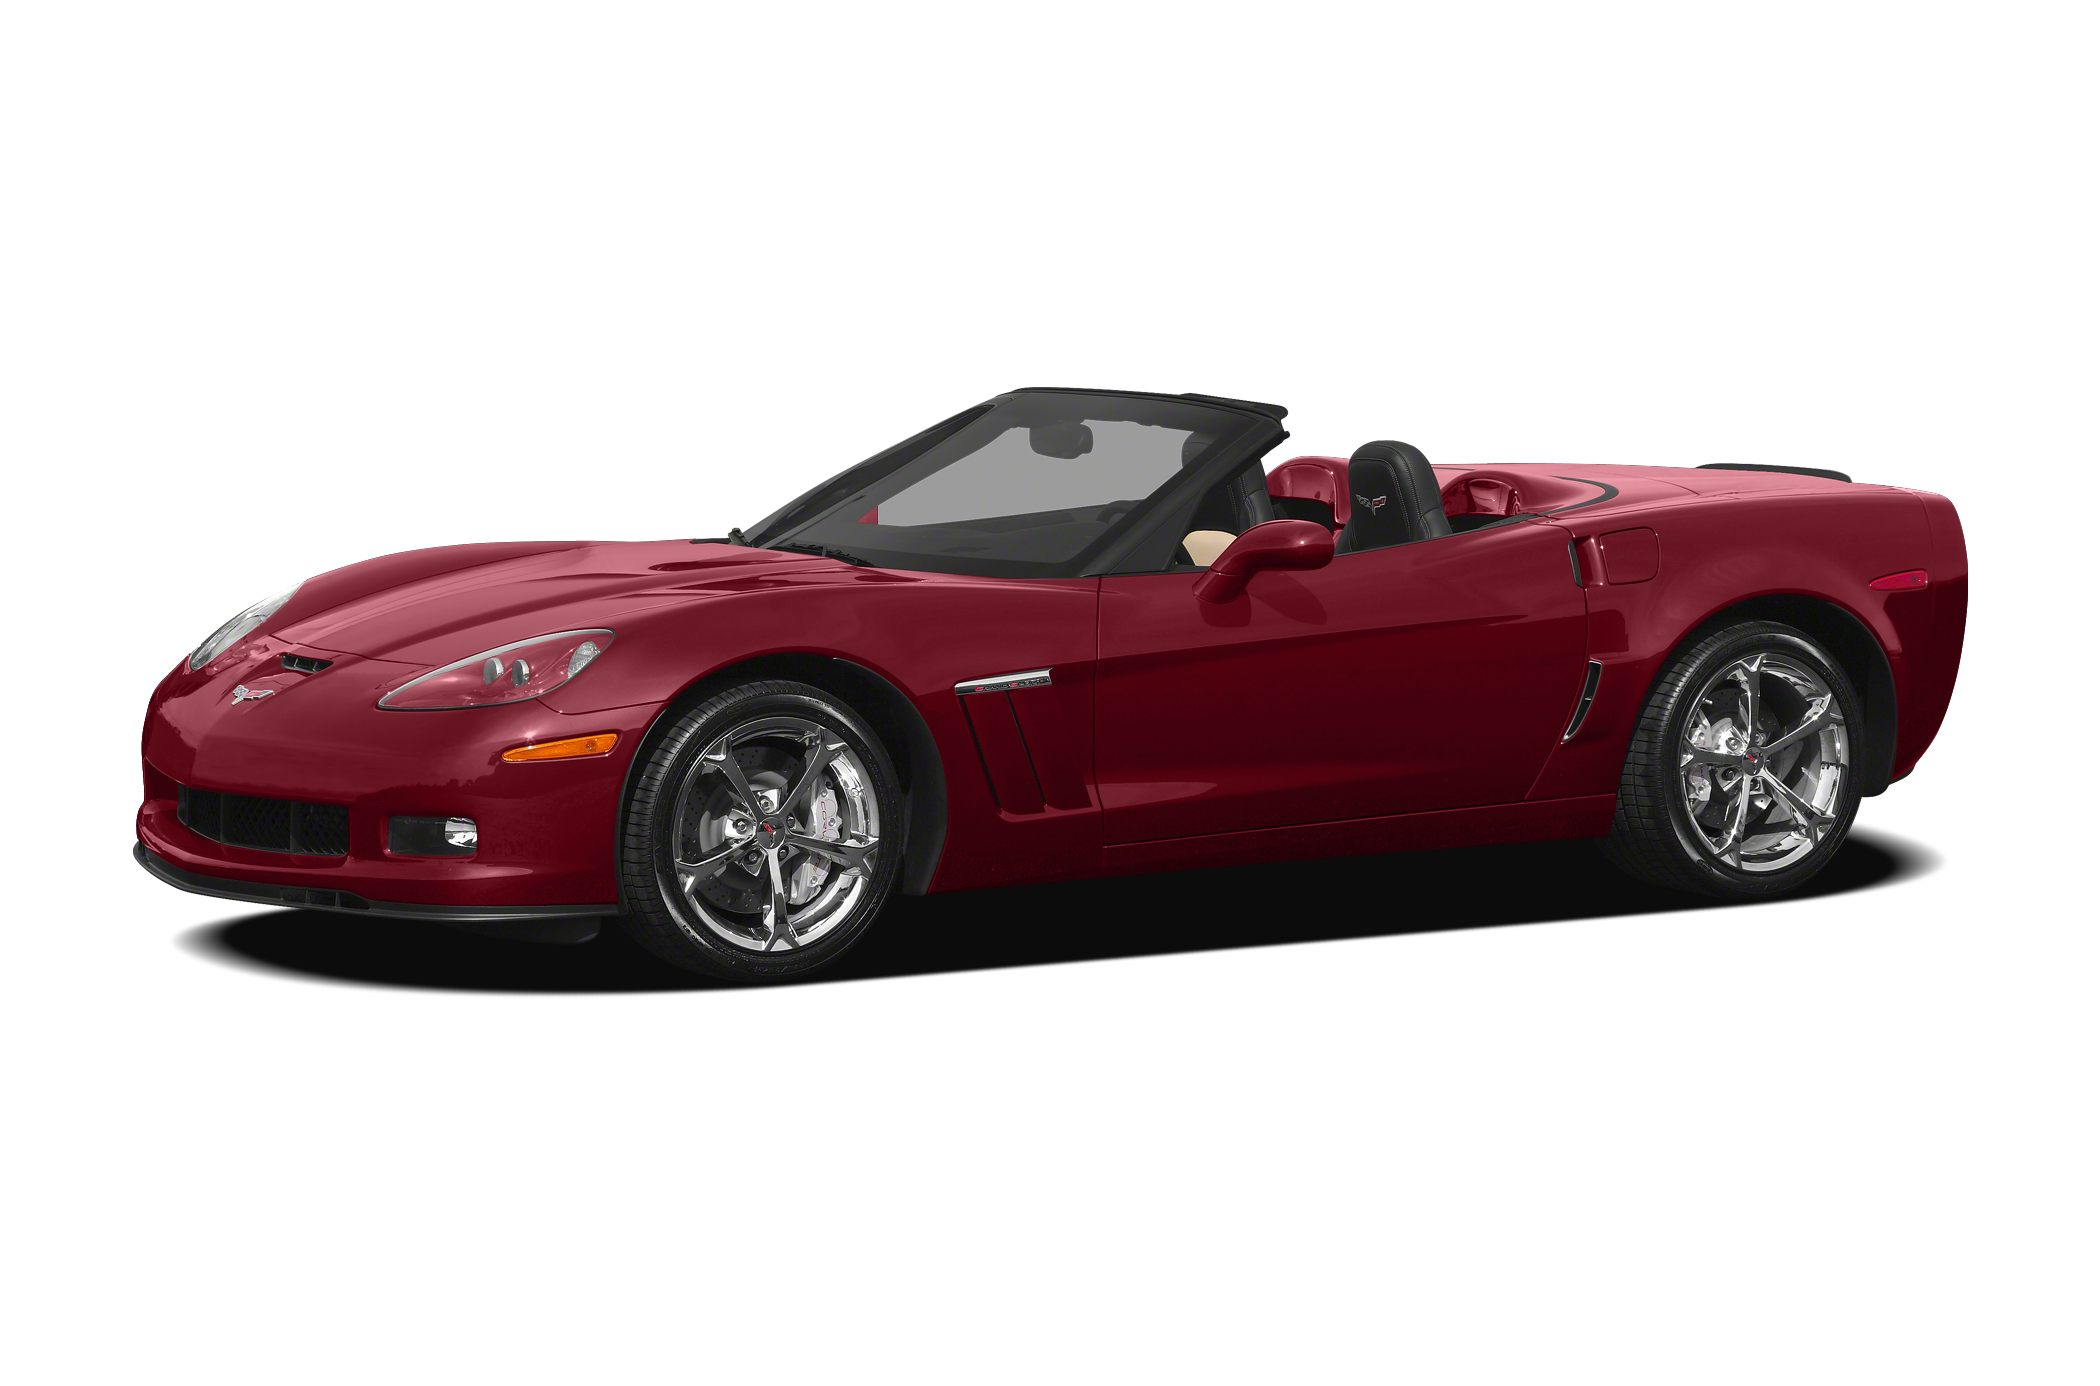 2010 Chevrolet Corvette Grand Sport Paul Masse Chevrolet is honored to present a wonderful example